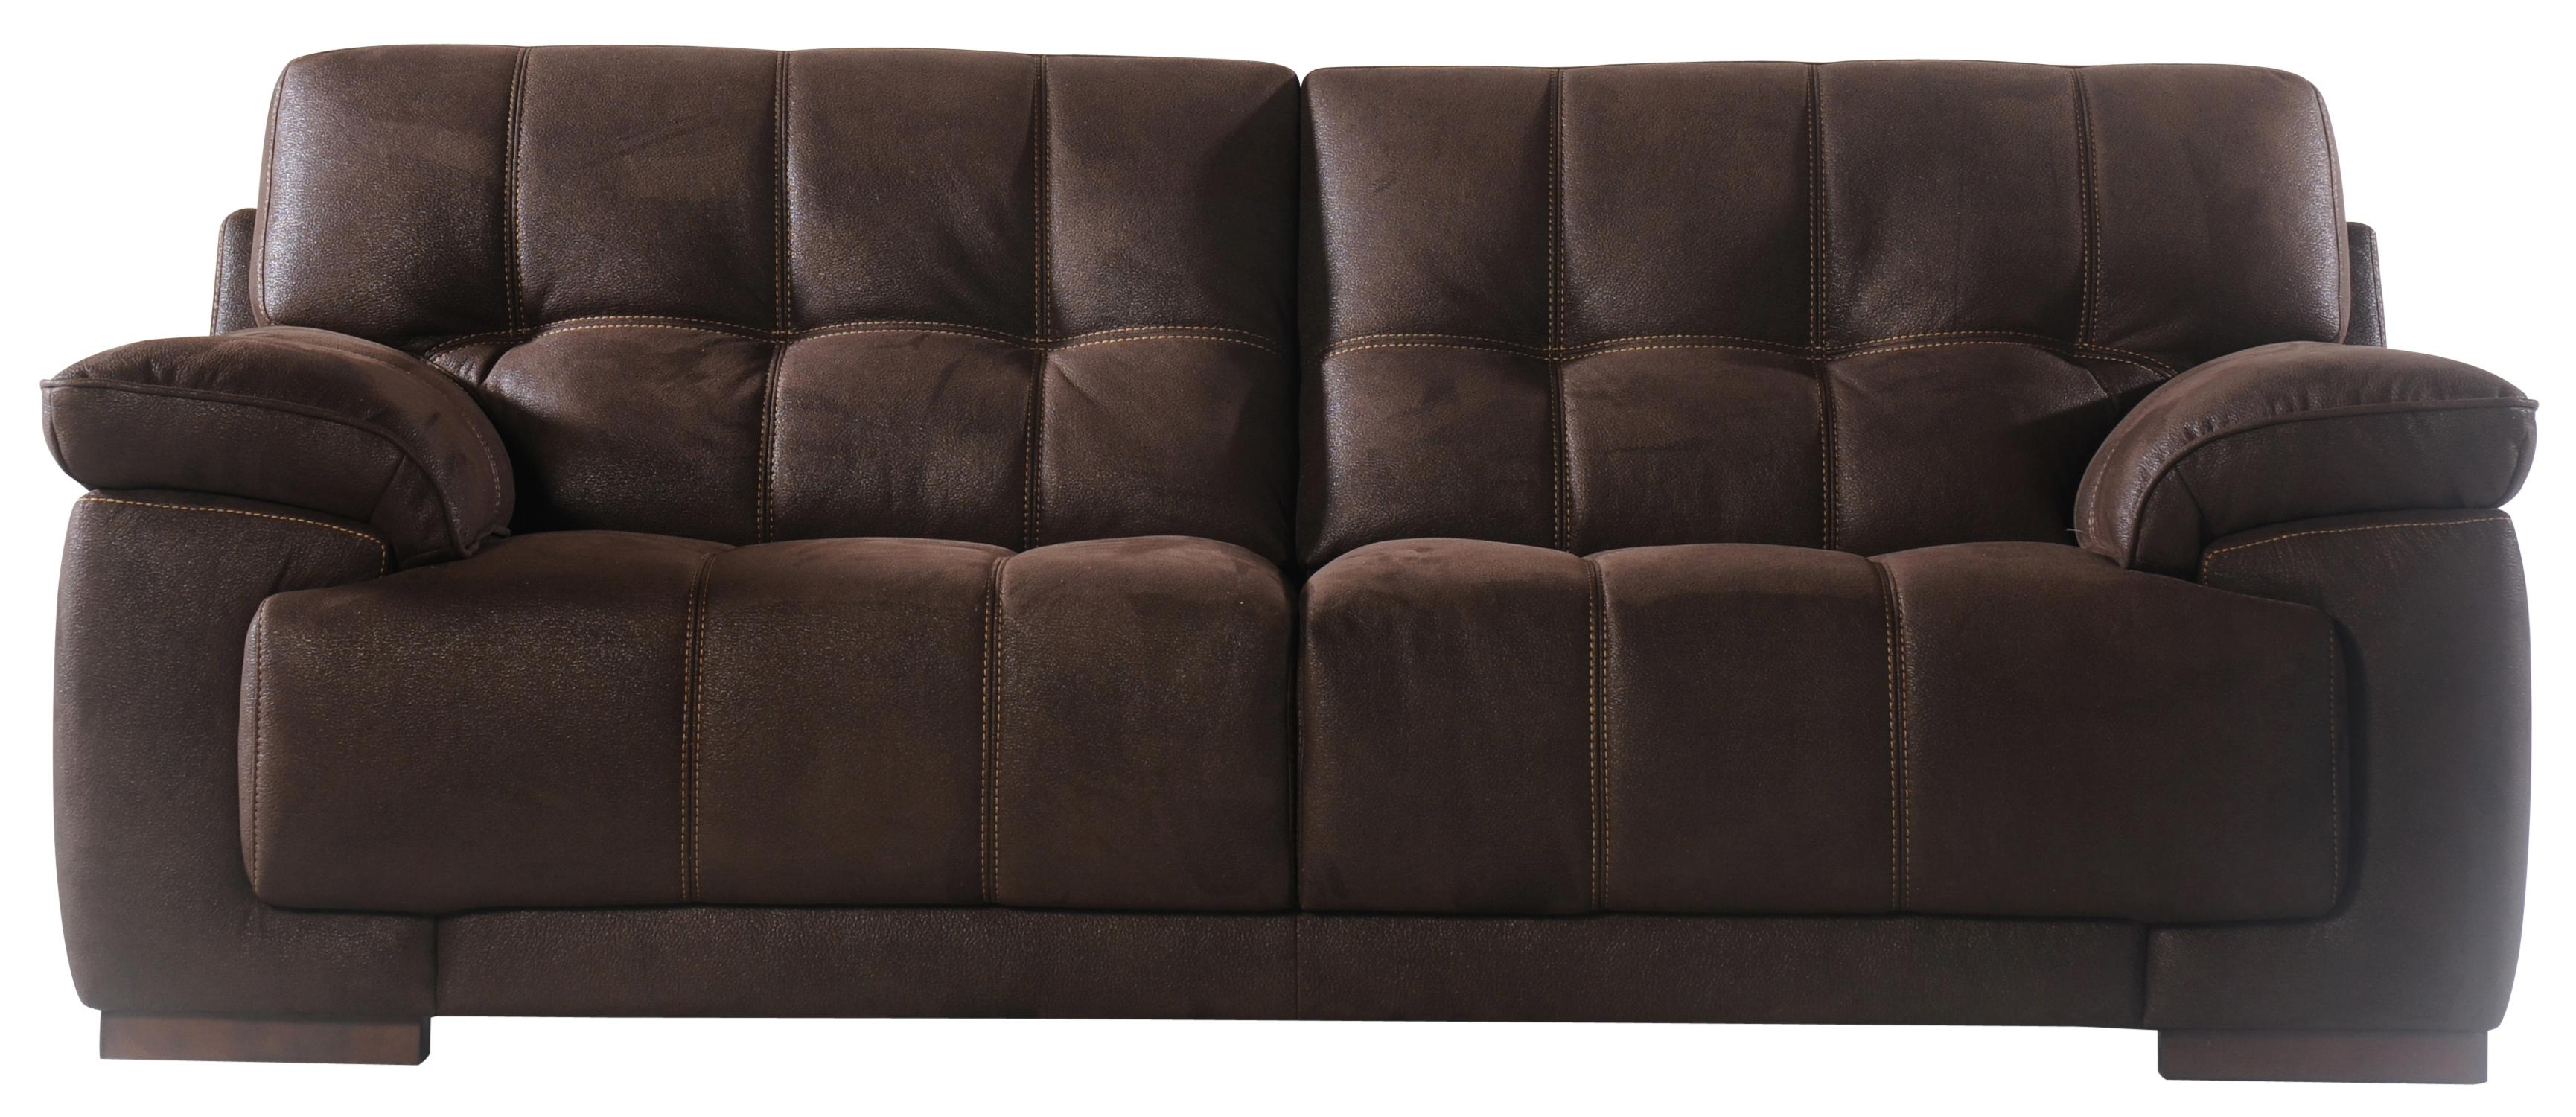 7840 Sofa by Violino at Furniture Superstore - Rochester, MN